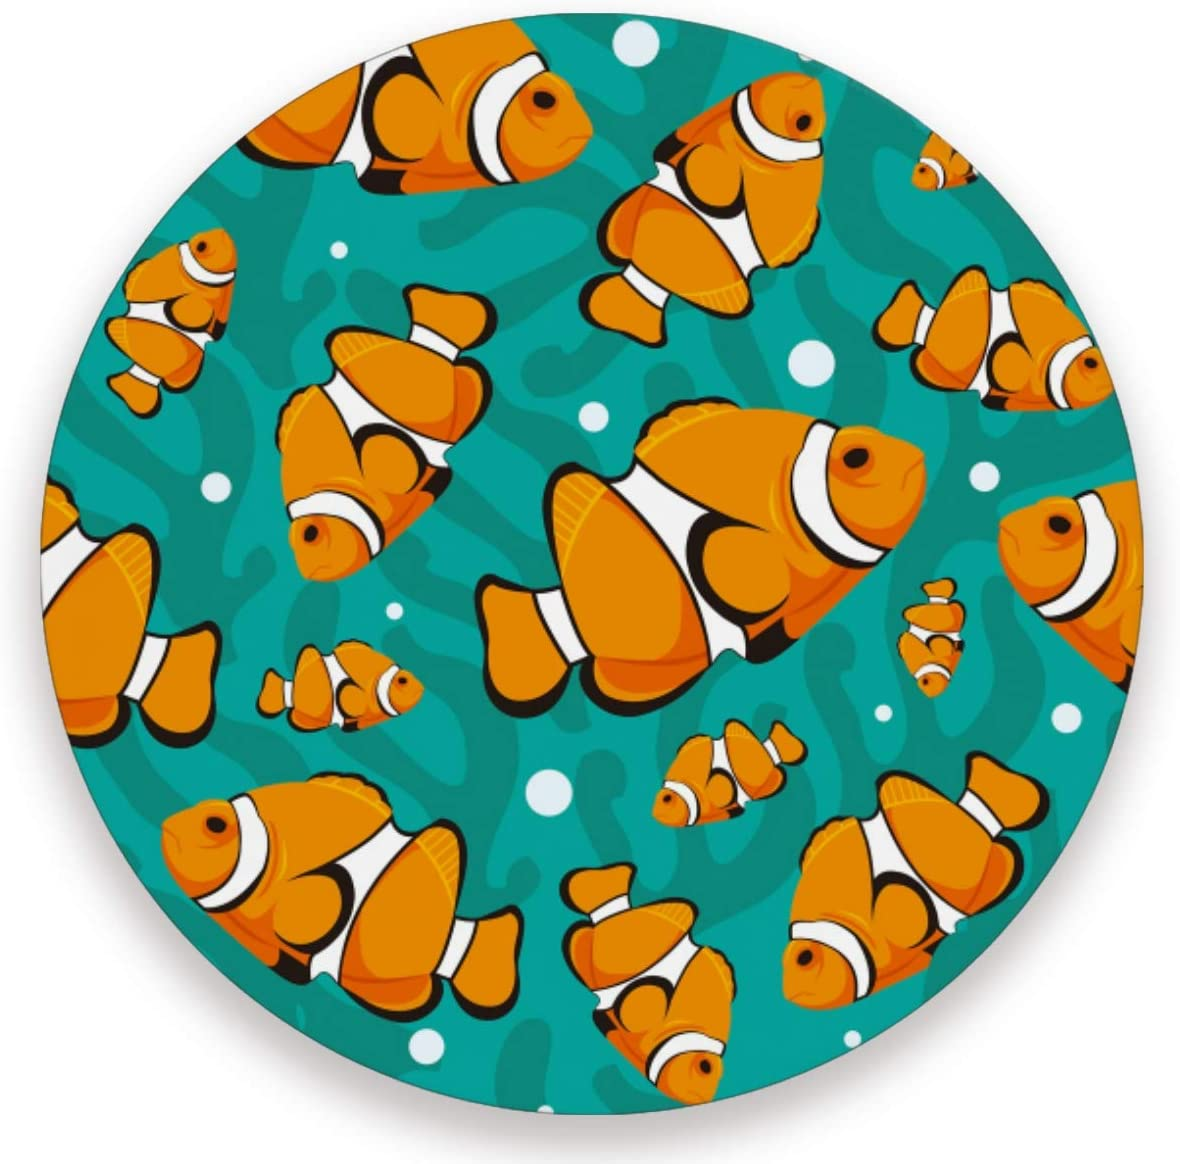 Olinyou Cute Goldfish Yellow Sea Coaster for Drinks 1 Pieces Absorbent Ceramic Stone Coasters with Cork Base